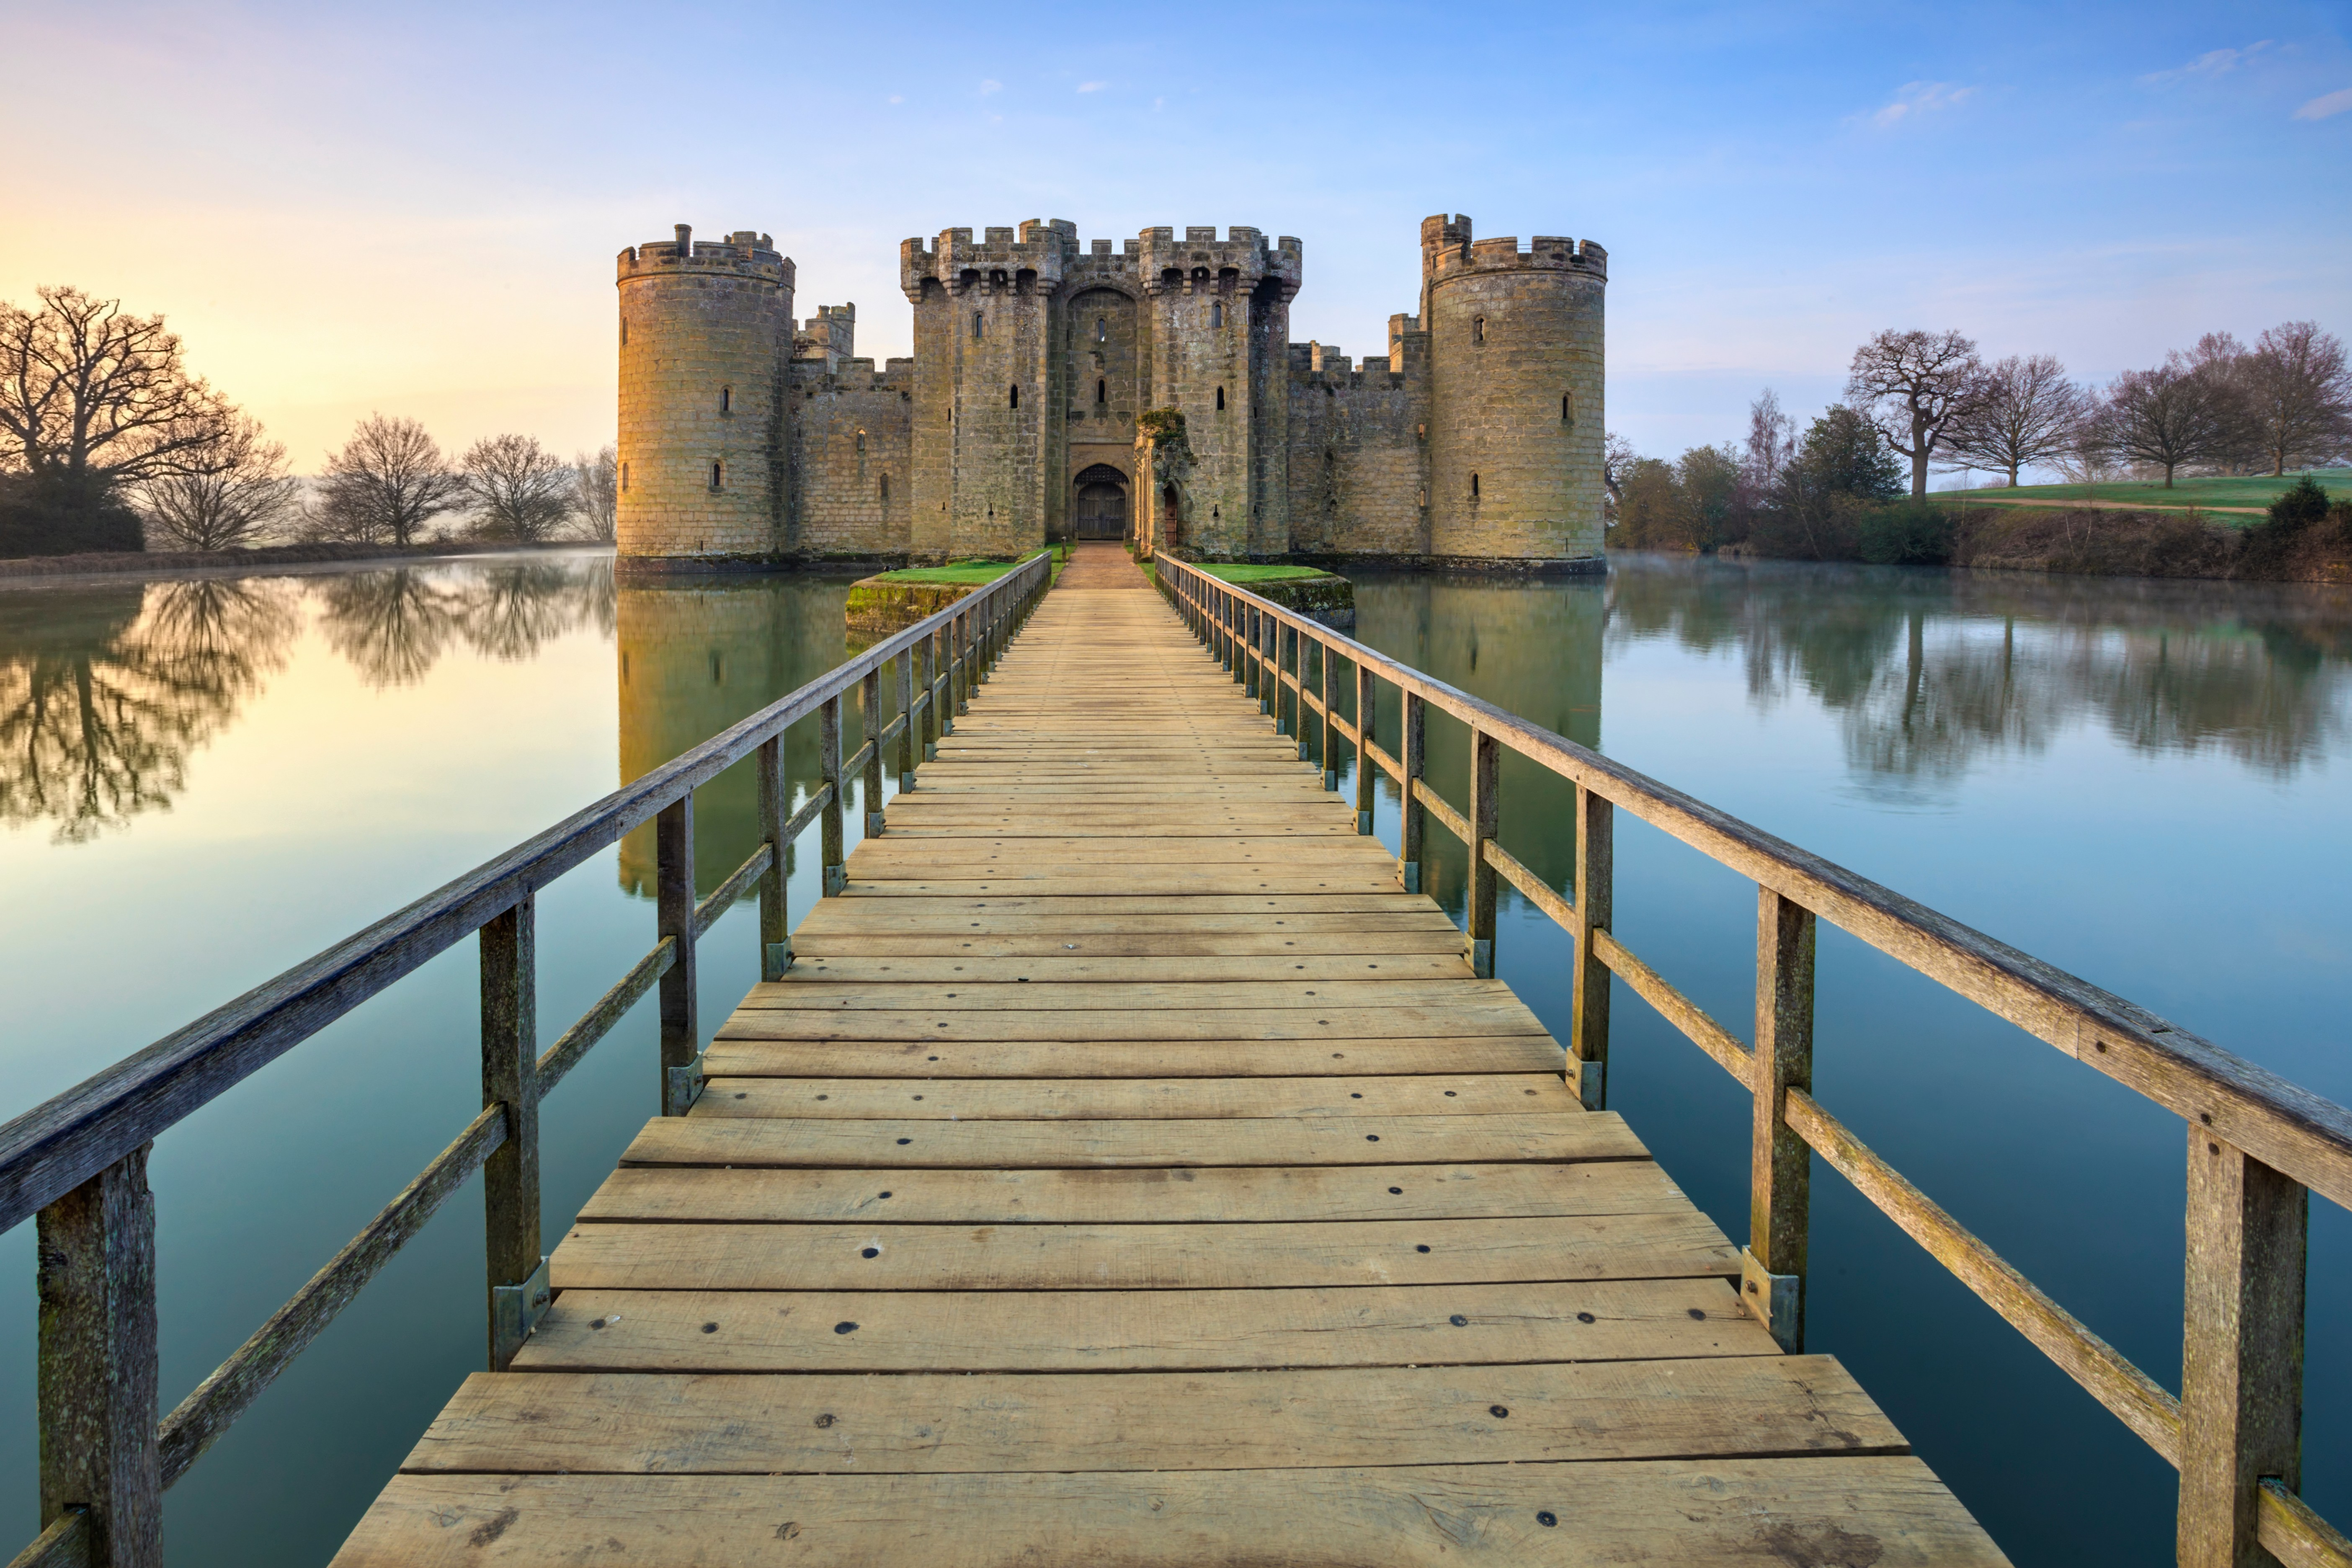 """The entrance to Bodiam Castle. """"If any castle conjures up the 'romance' of the mediaeval world, this is it,"""" says Michael Smith. (Photo by Andrew Ray/LOOP IMAGES via Getty Images)"""